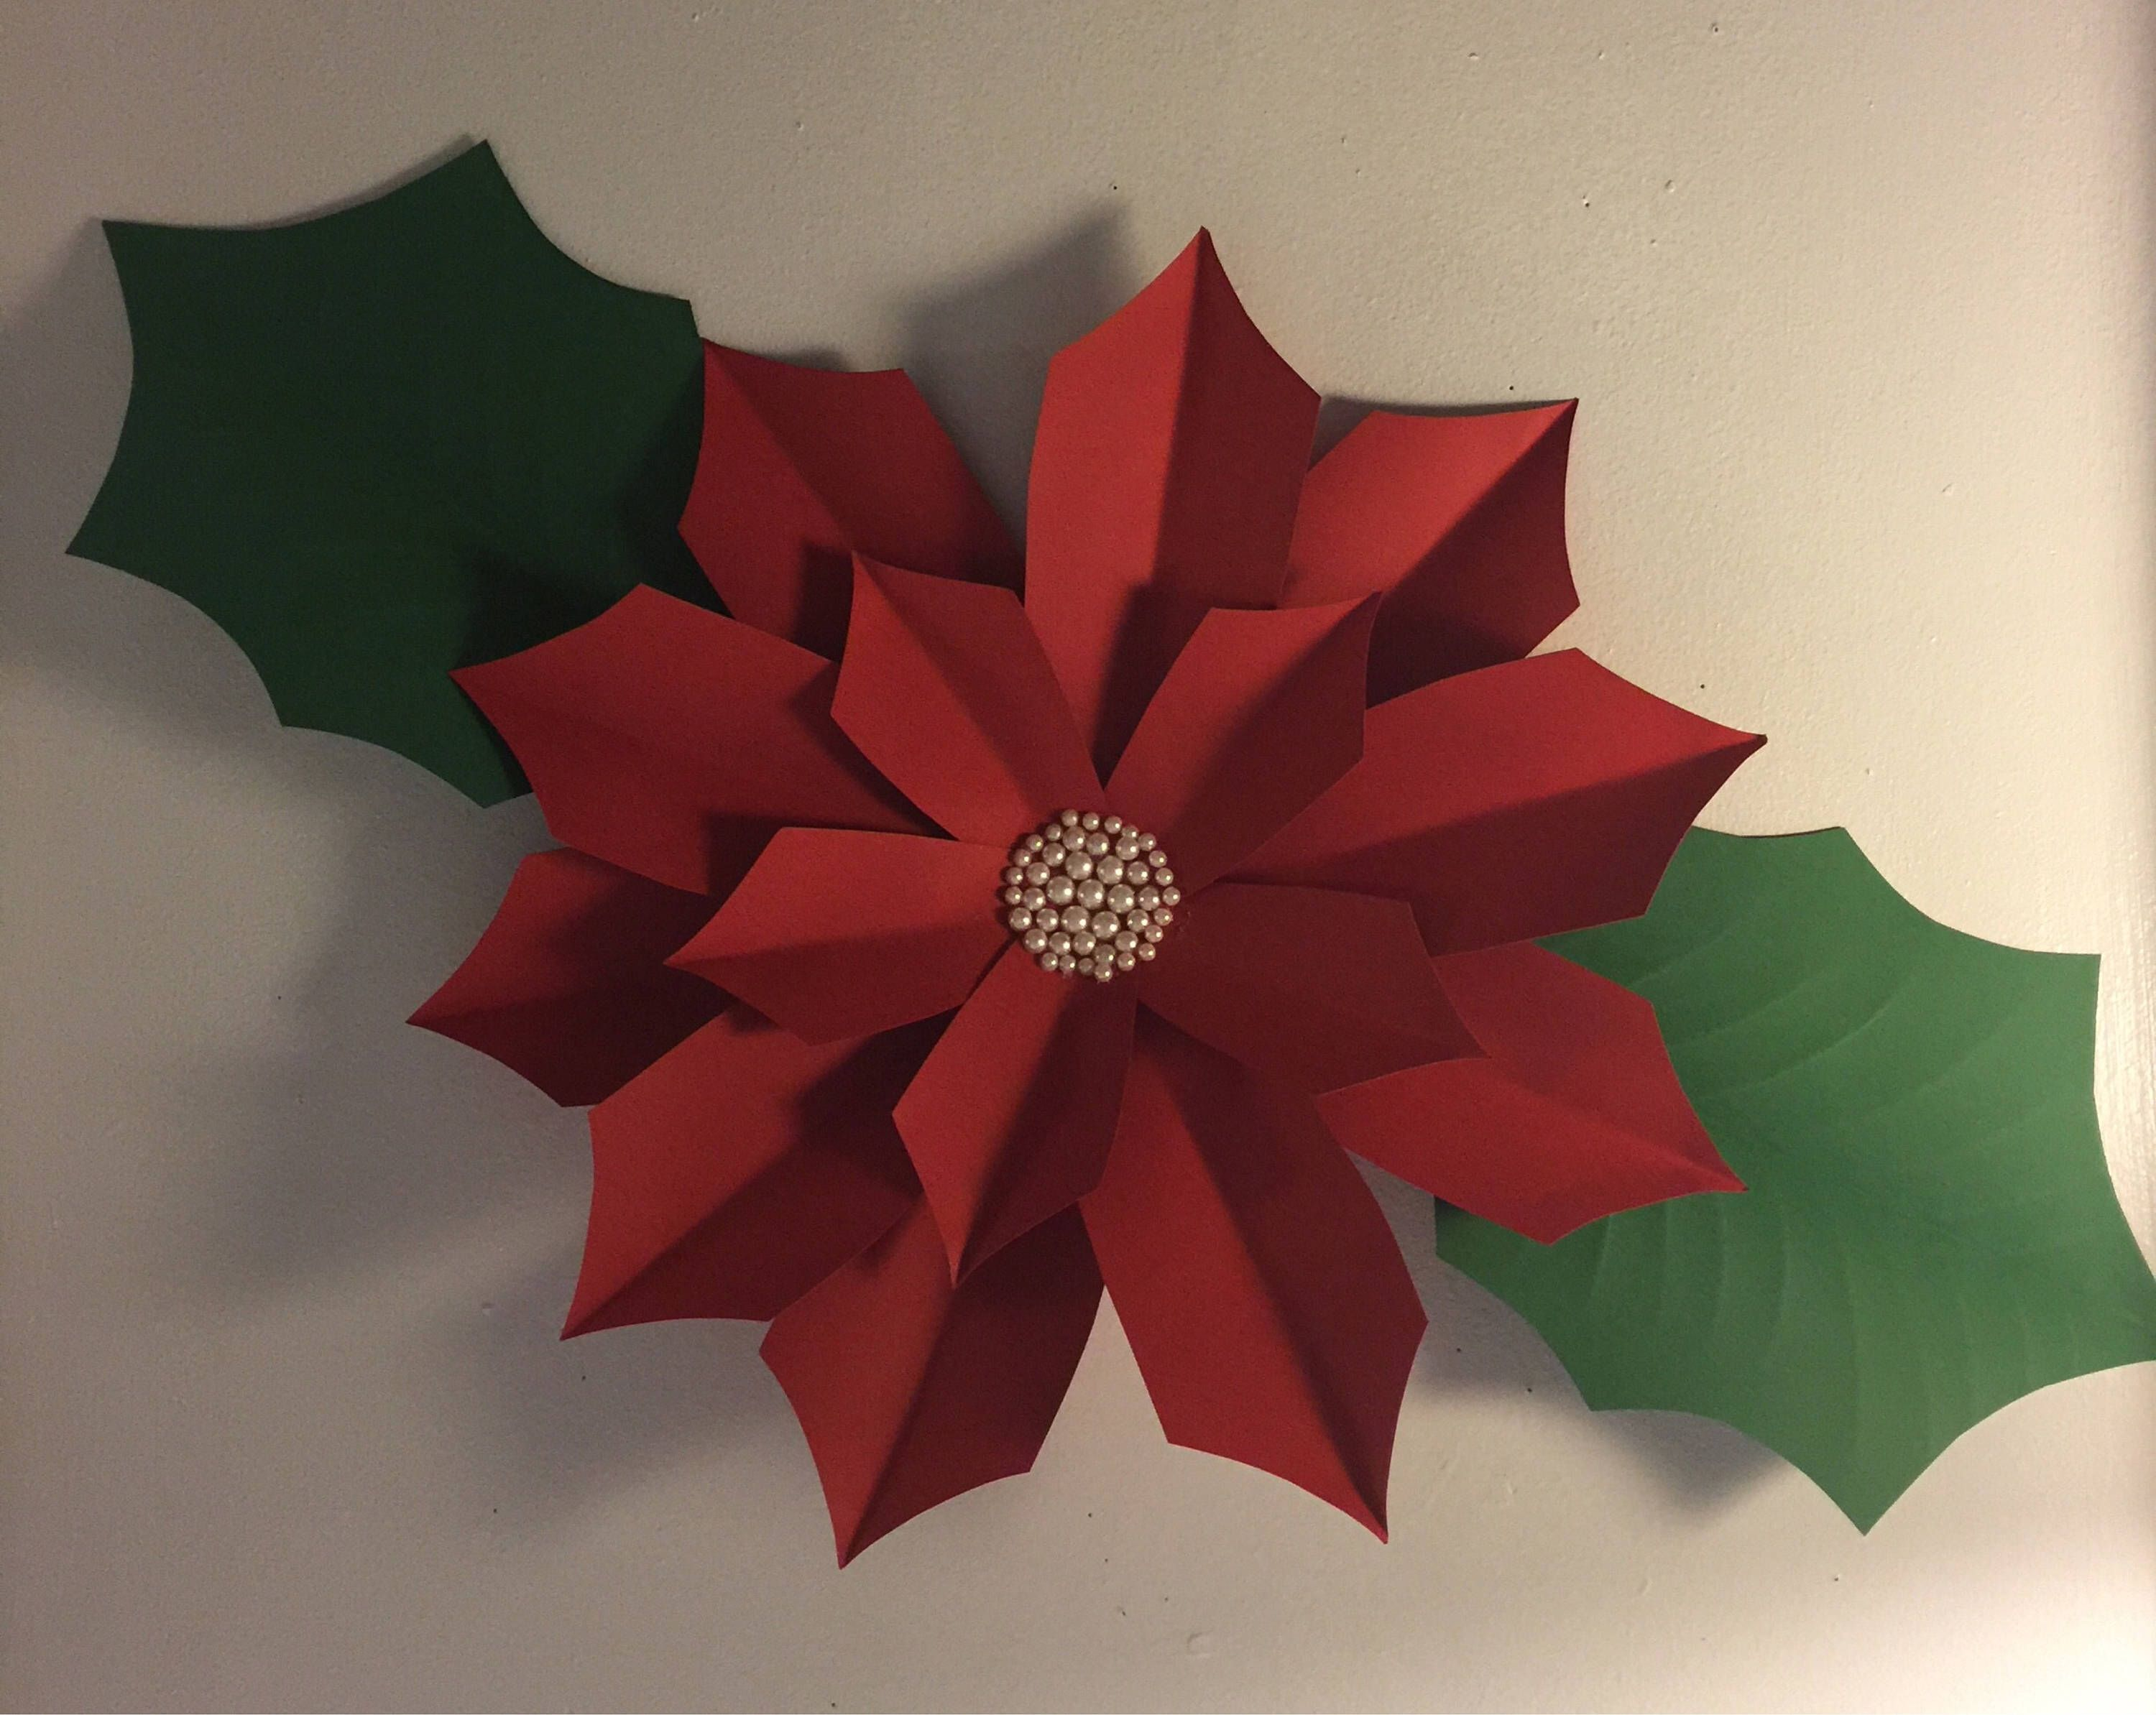 Pin By Mike Lifsey On Christmas Pinterest Poinsettia Template